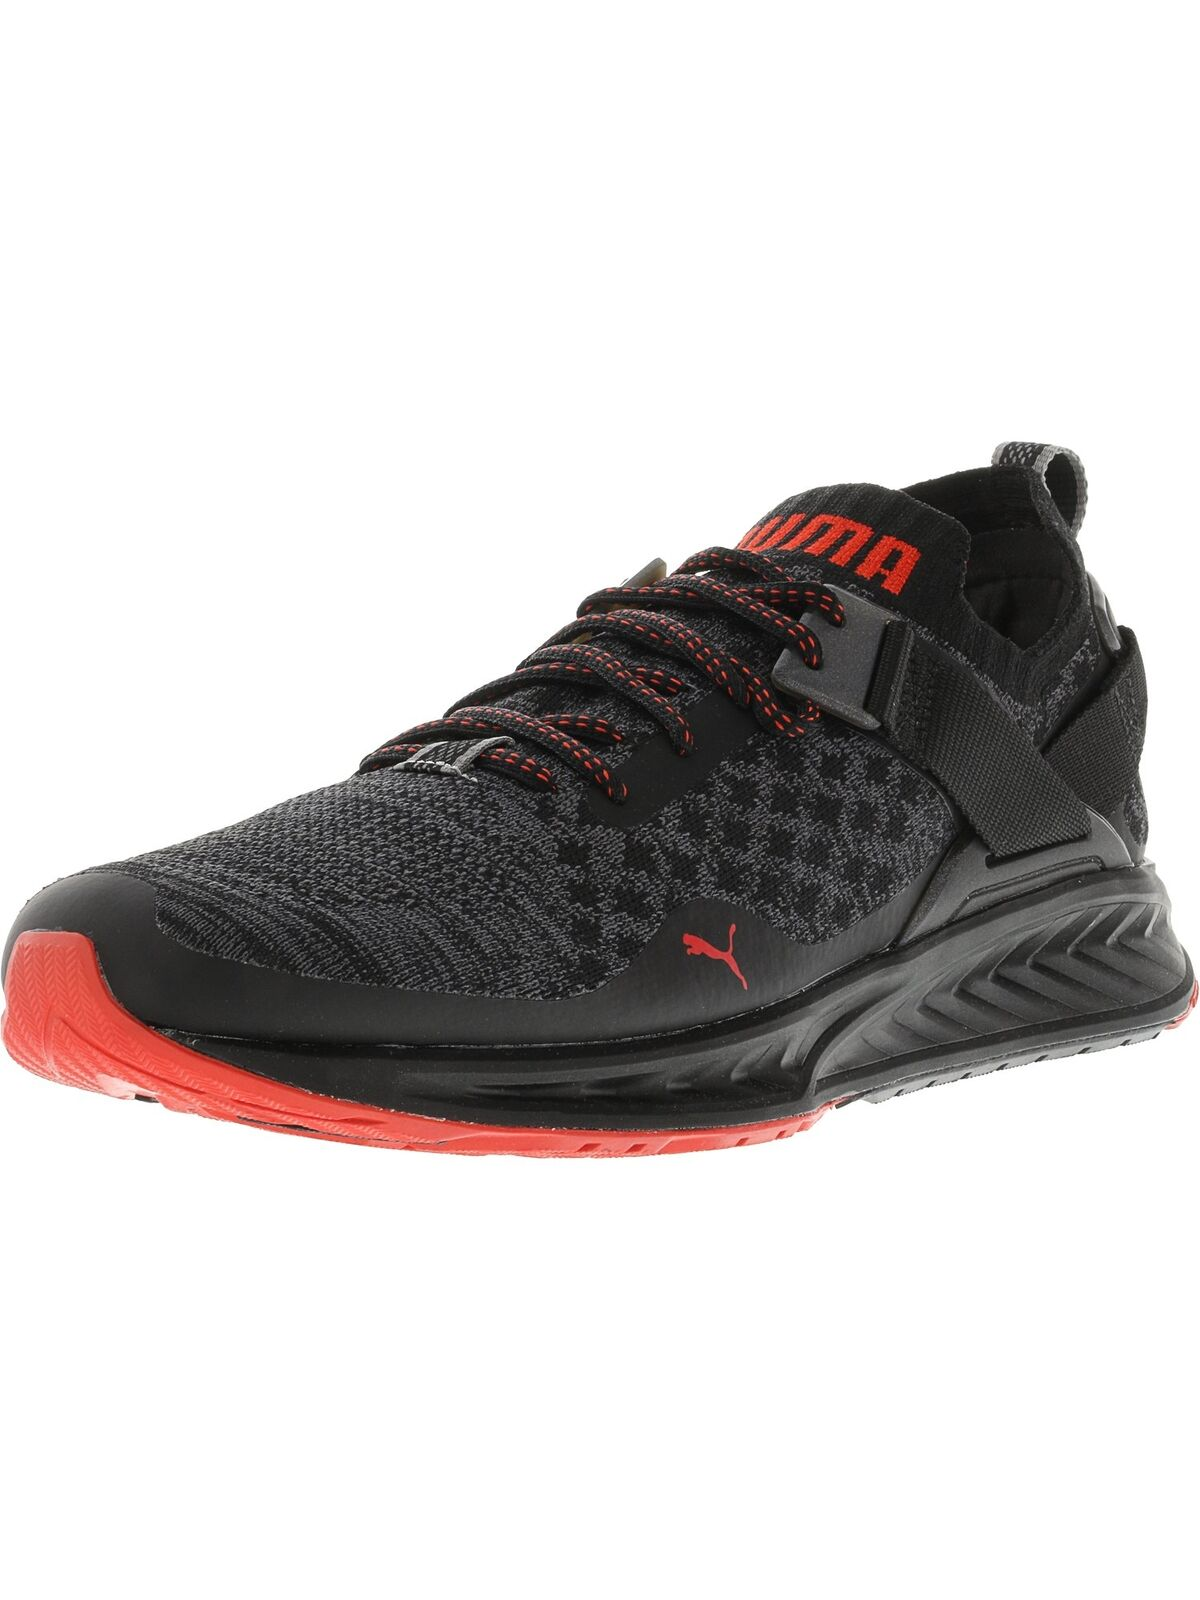 Puma Men's Ignite Evoknit Lo Pavement Ankle-High Running shoes